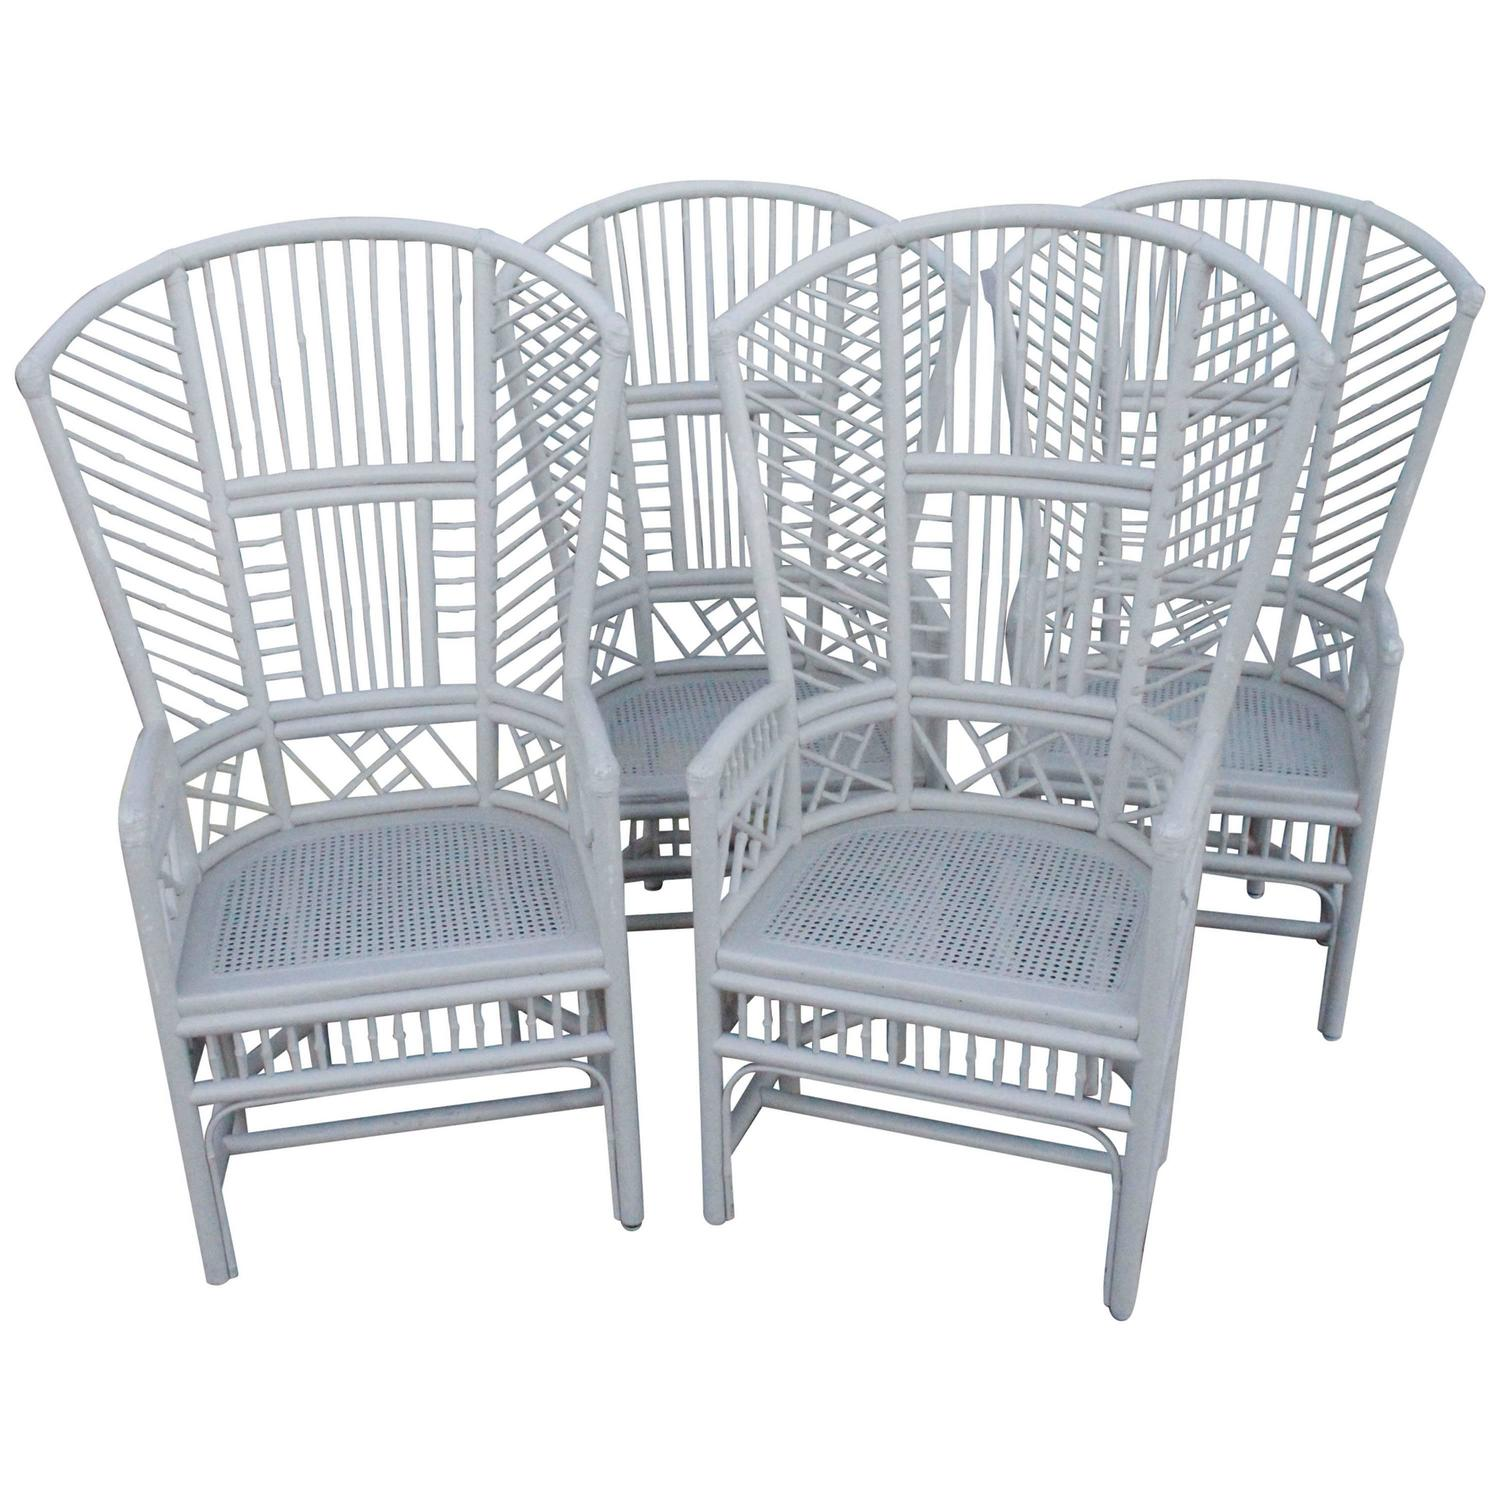 Superb Set Of Four Brighton Pavilion High Back Rattan Chinese Chippendale Club  Chairs For Sale At 1stdibs